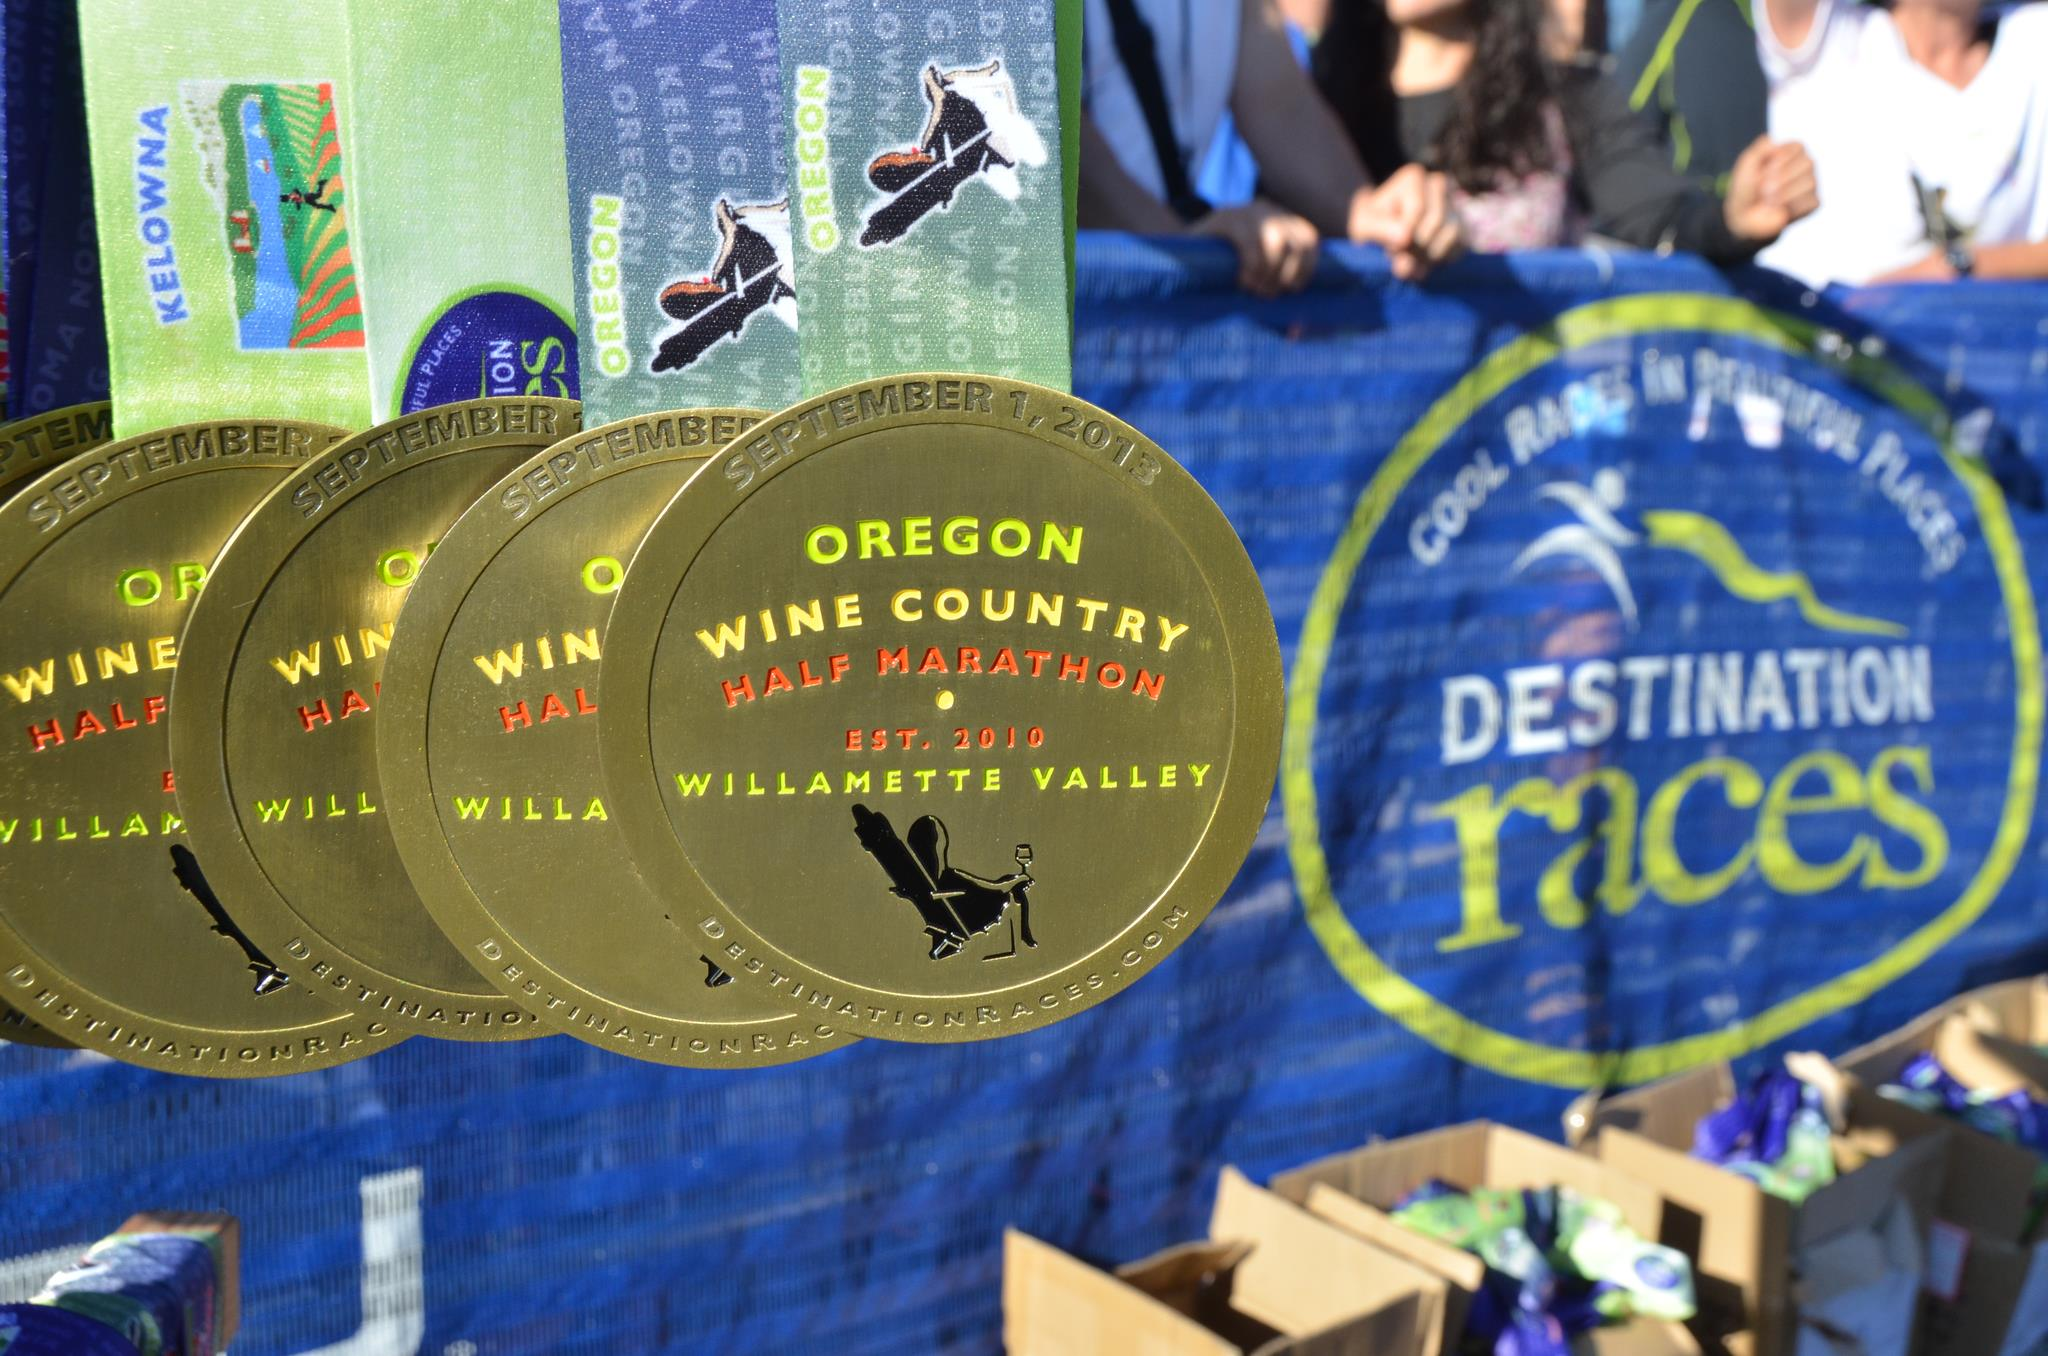 The medal from the 2013 Oregon Wine Country Half Marathon: beautiful, classy, and substantial. © 2013 Destination Races | All Rights Reserved